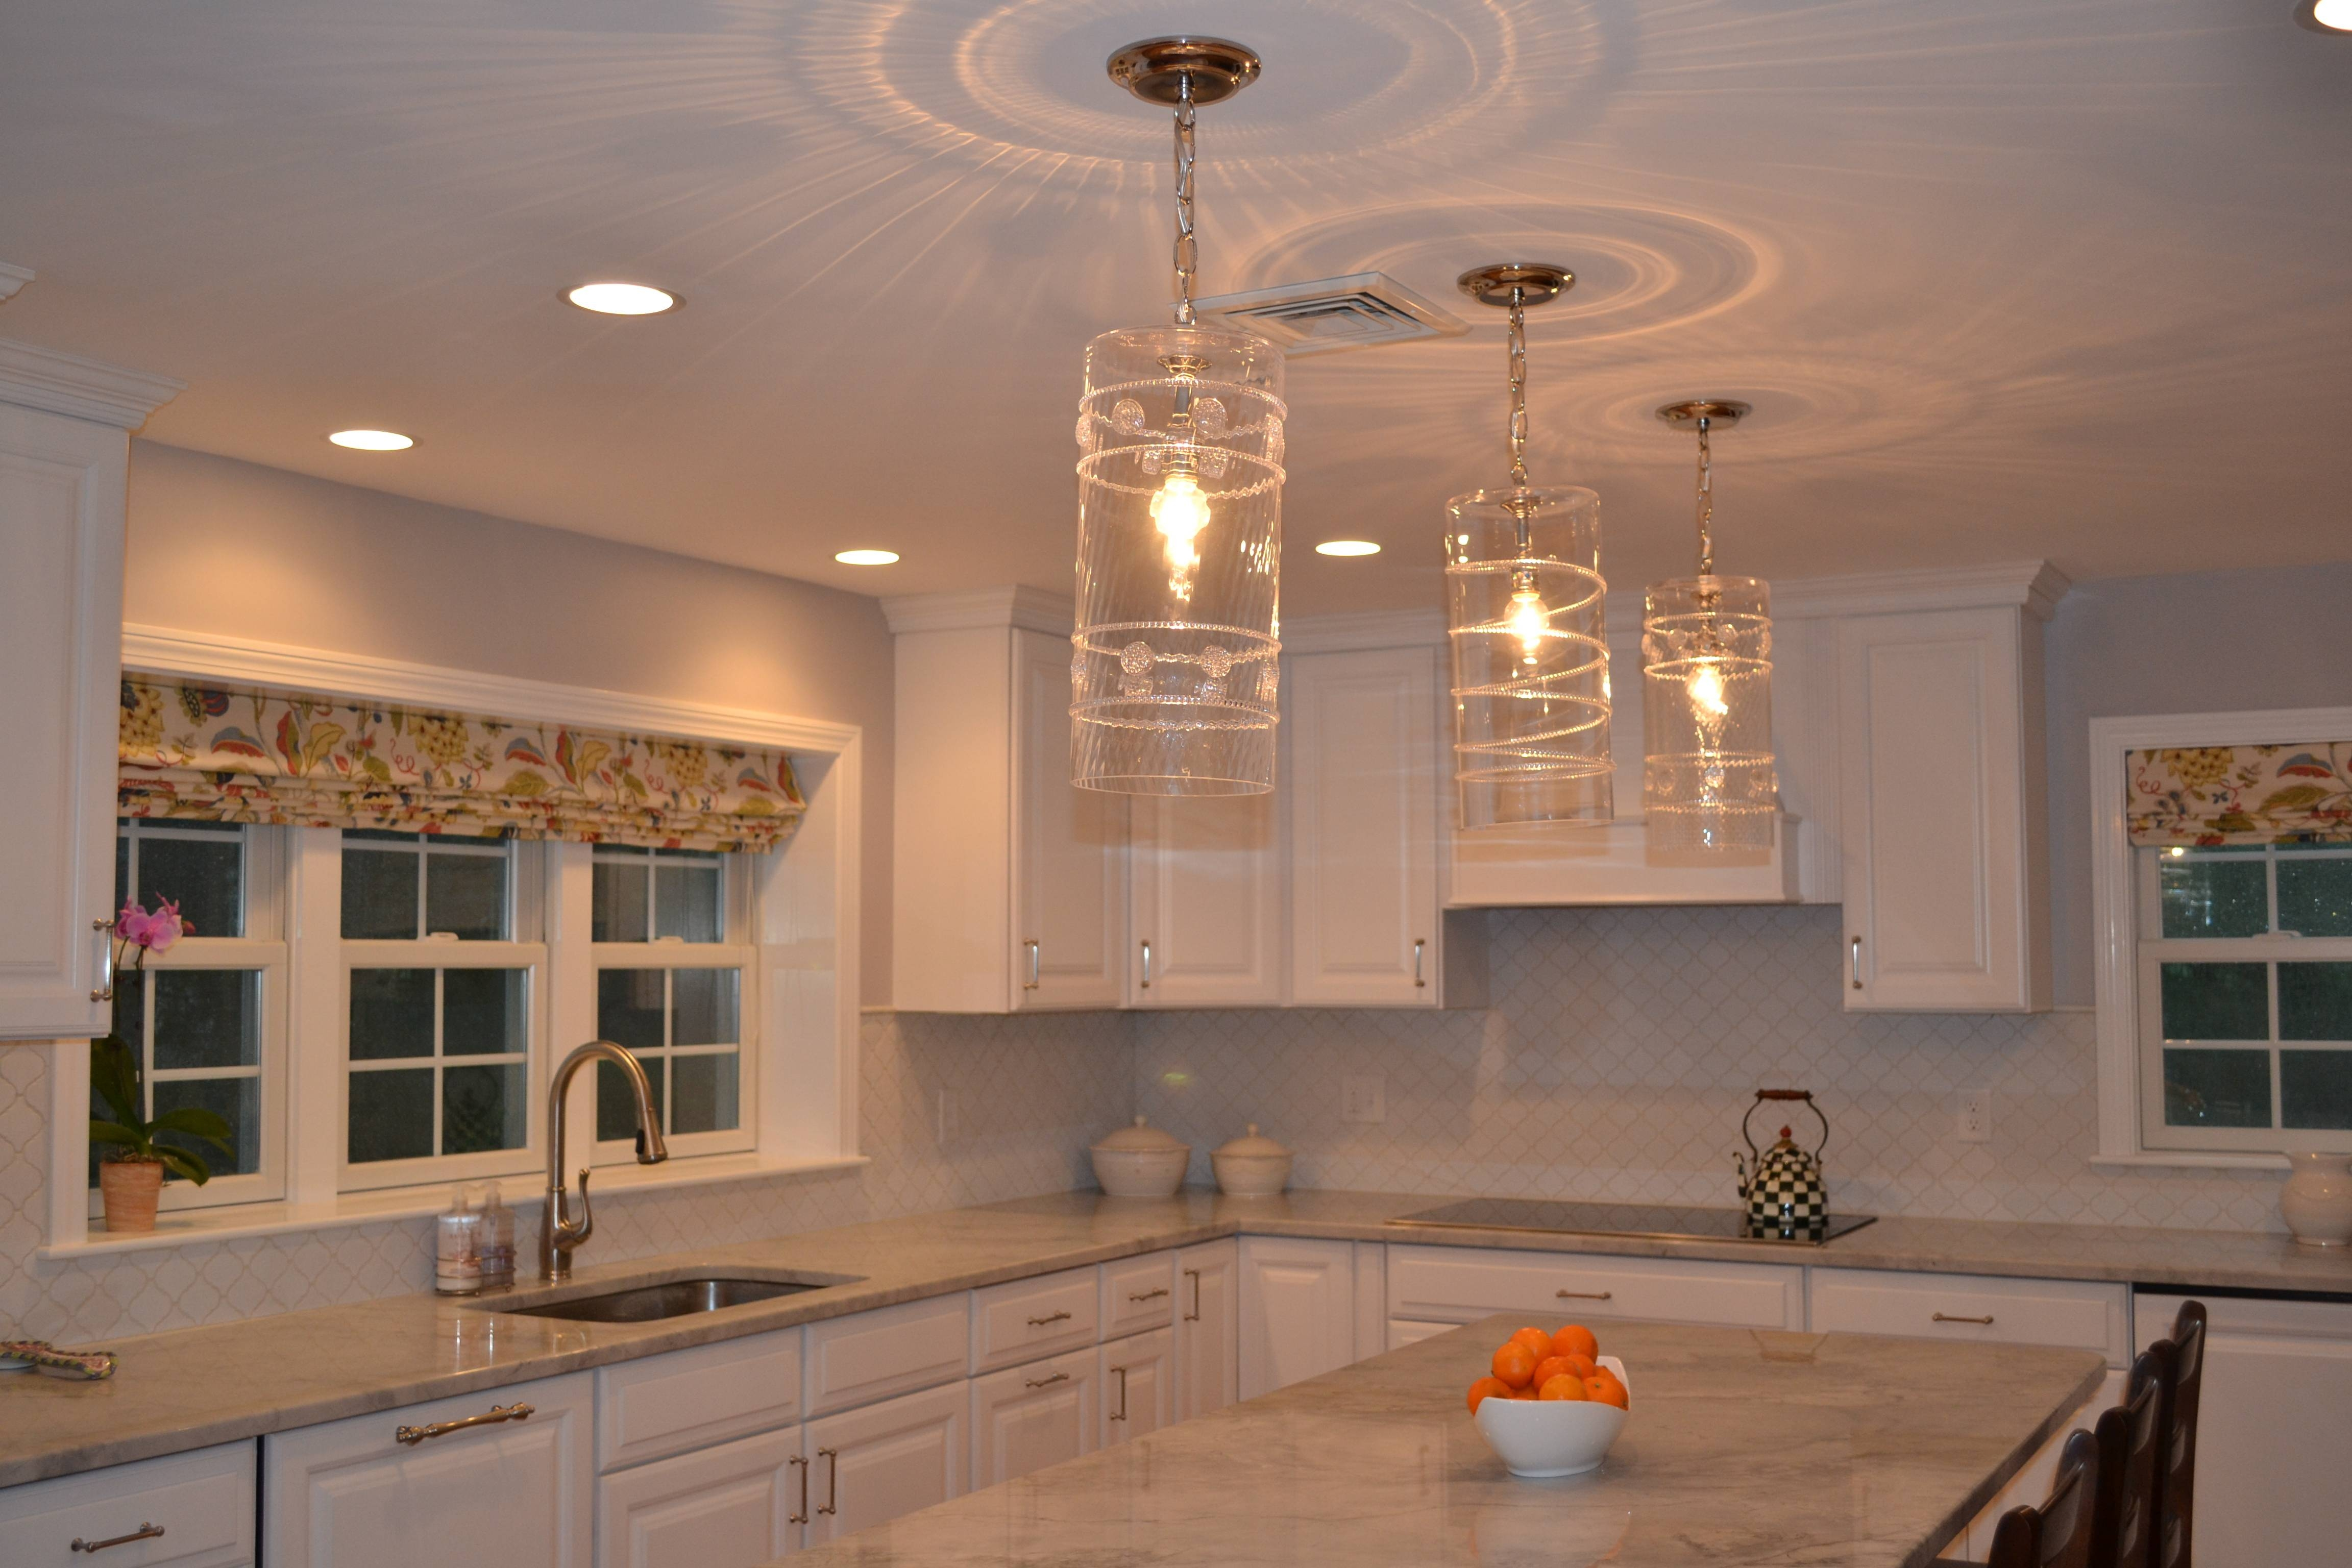 Beautiful Kitchen Pendant Lighting Over Island 84 For Orange pertaining to Orange Pendant Lights for Kitchen (Image 2 of 15)